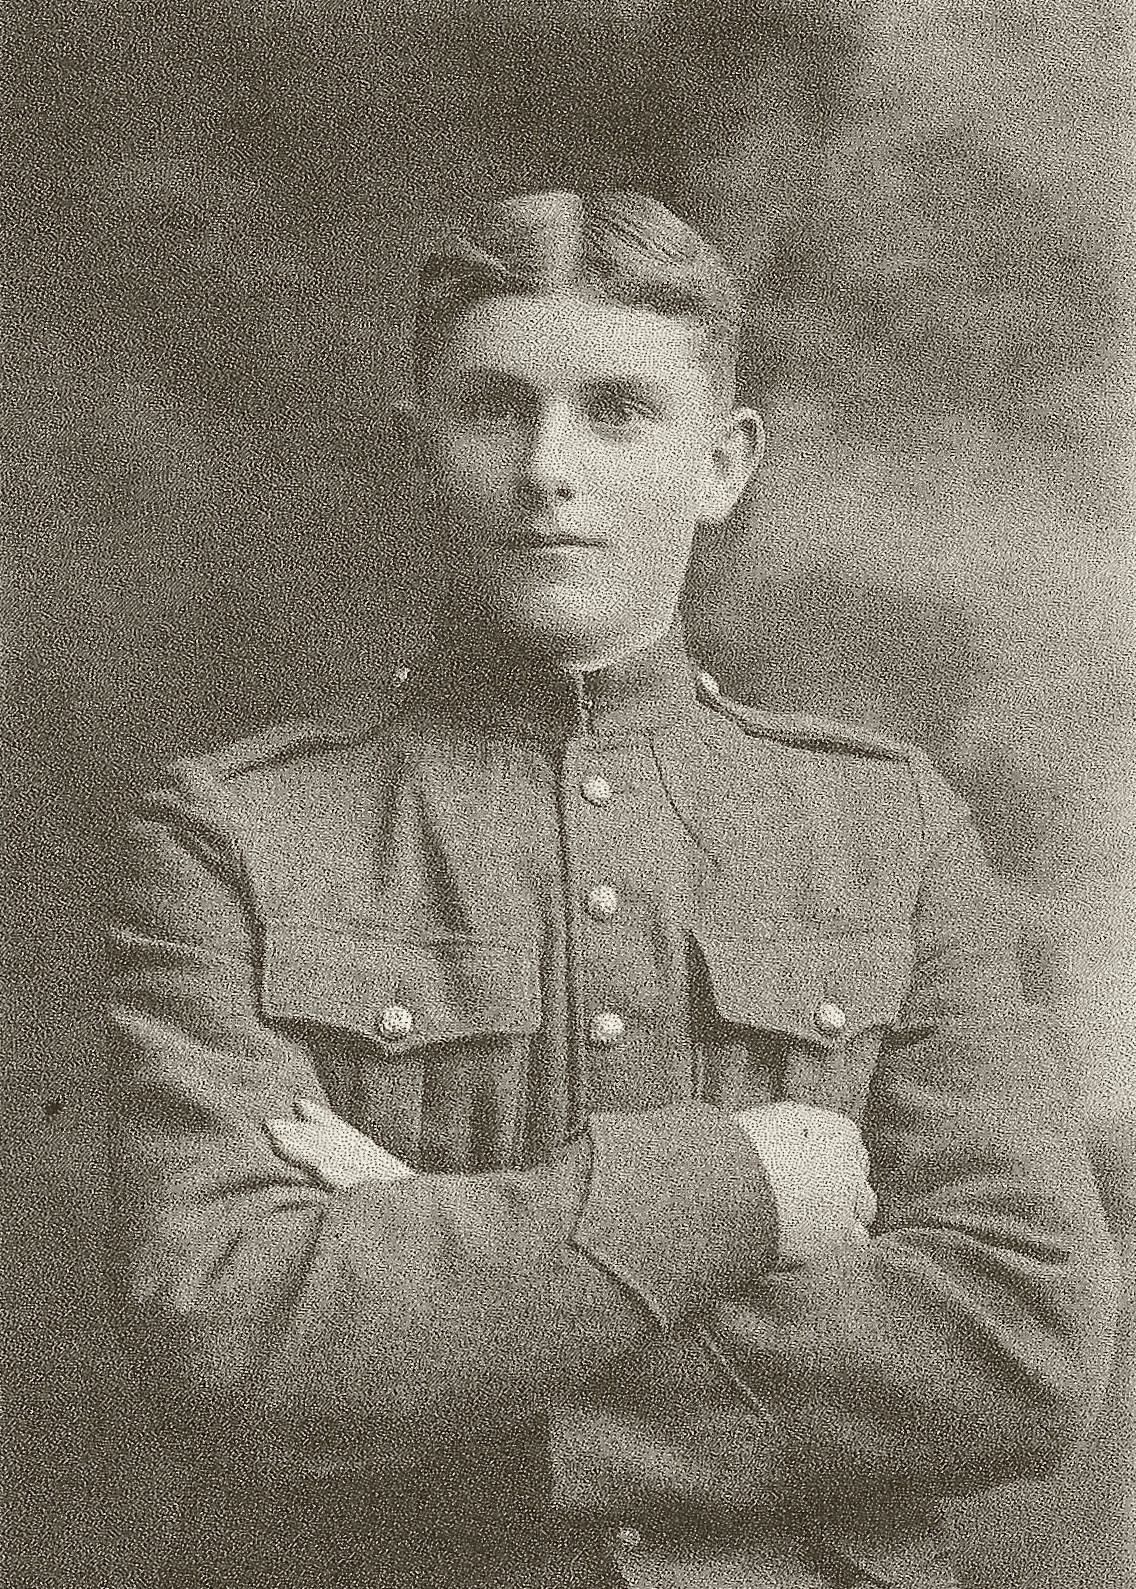 Photo of Robert Foster – Brother of William Earl Foster who was killed on August 8, 1918 and brother of Wilmer Alexander Foster who was killed in WWII on June 11, 1944.